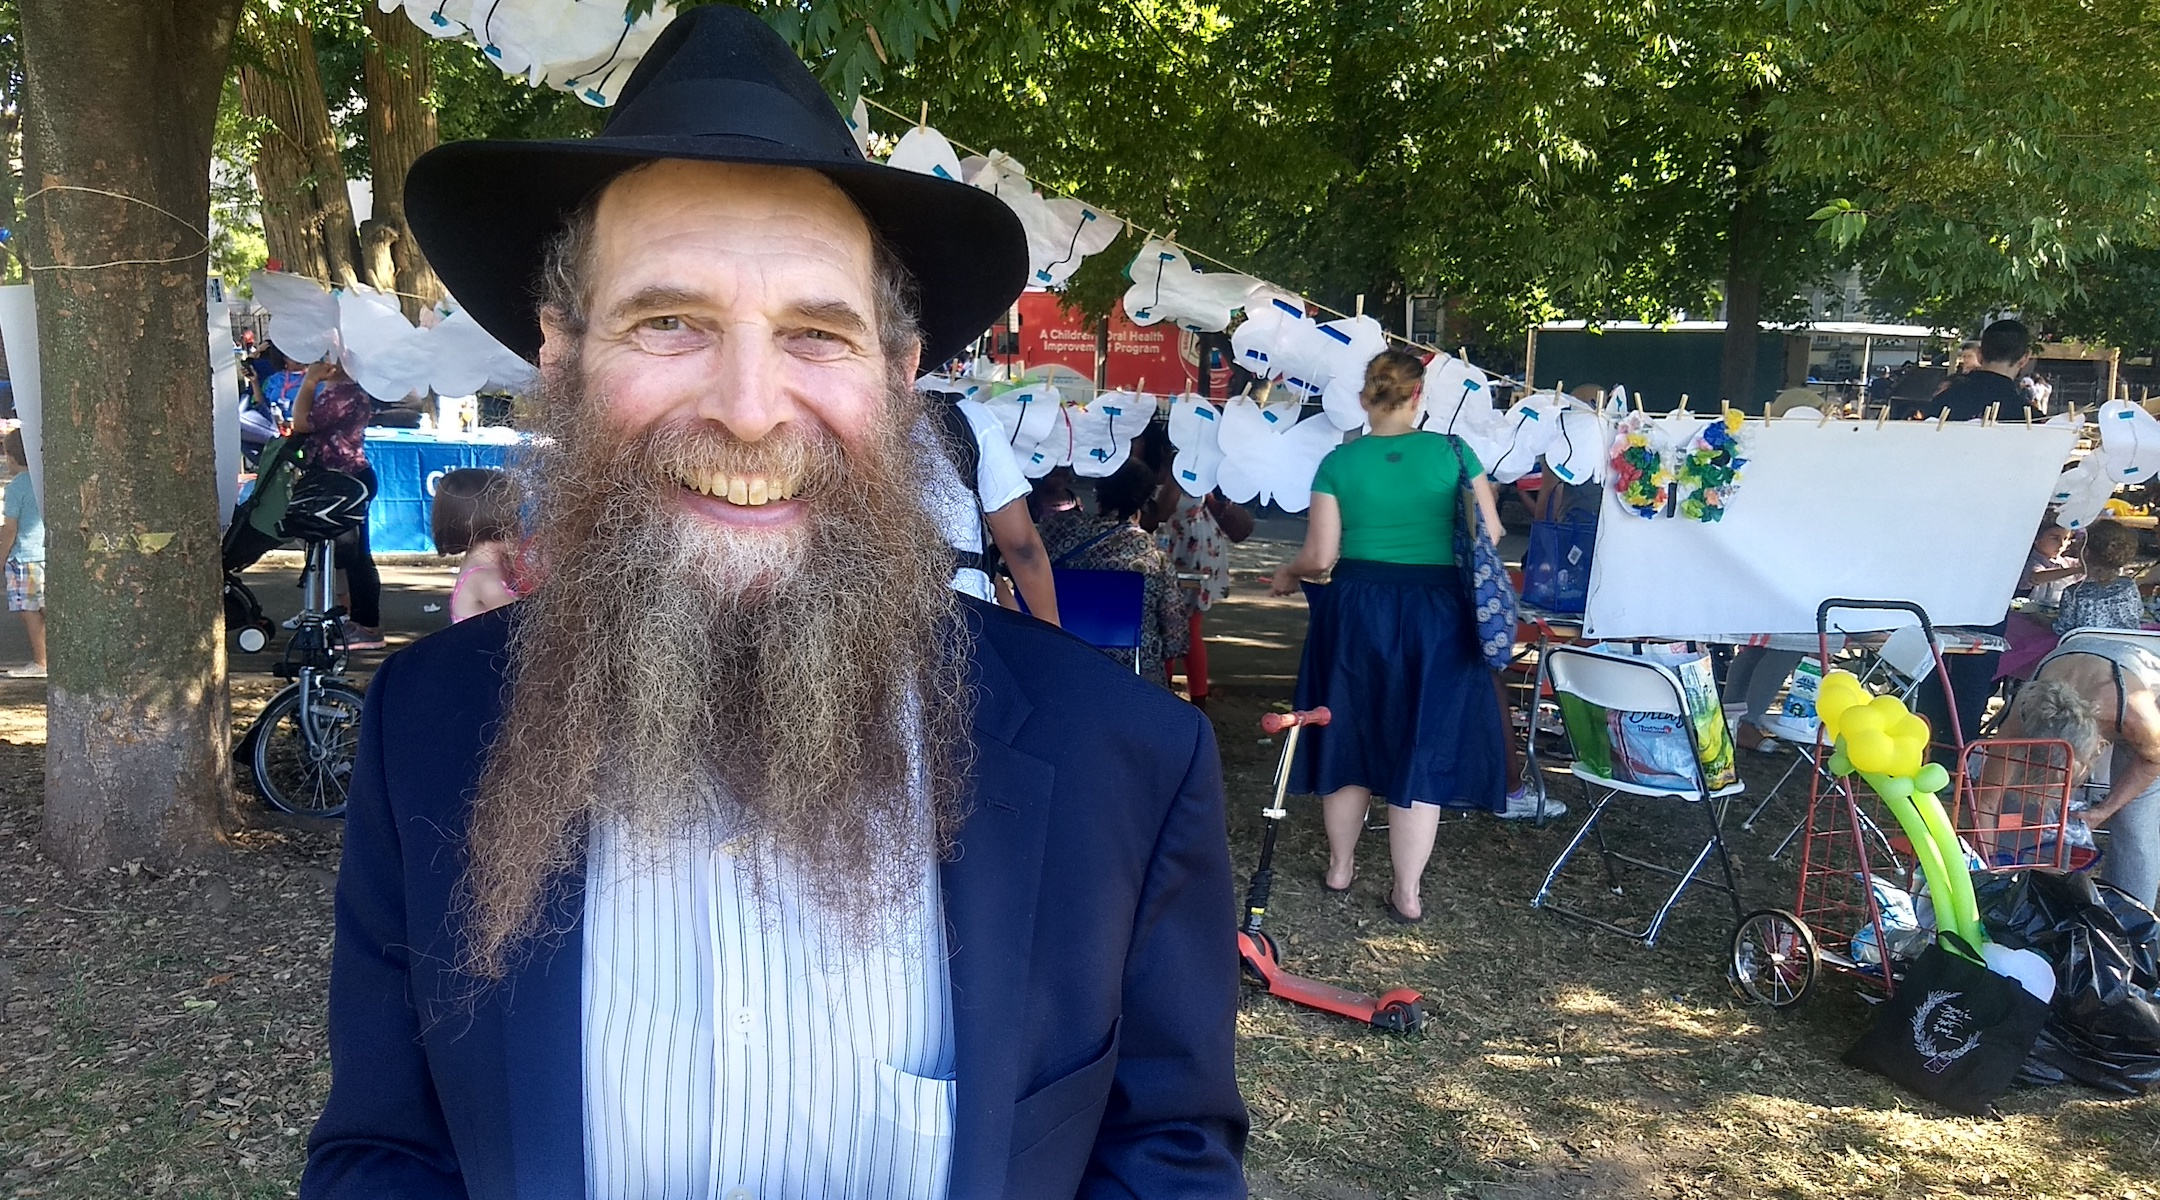 Eli Cohen, executive director of the Crown Heights Jewish Community Center, said relations have improved in the neighborhood since the 1991 riots. (Ben Sales)